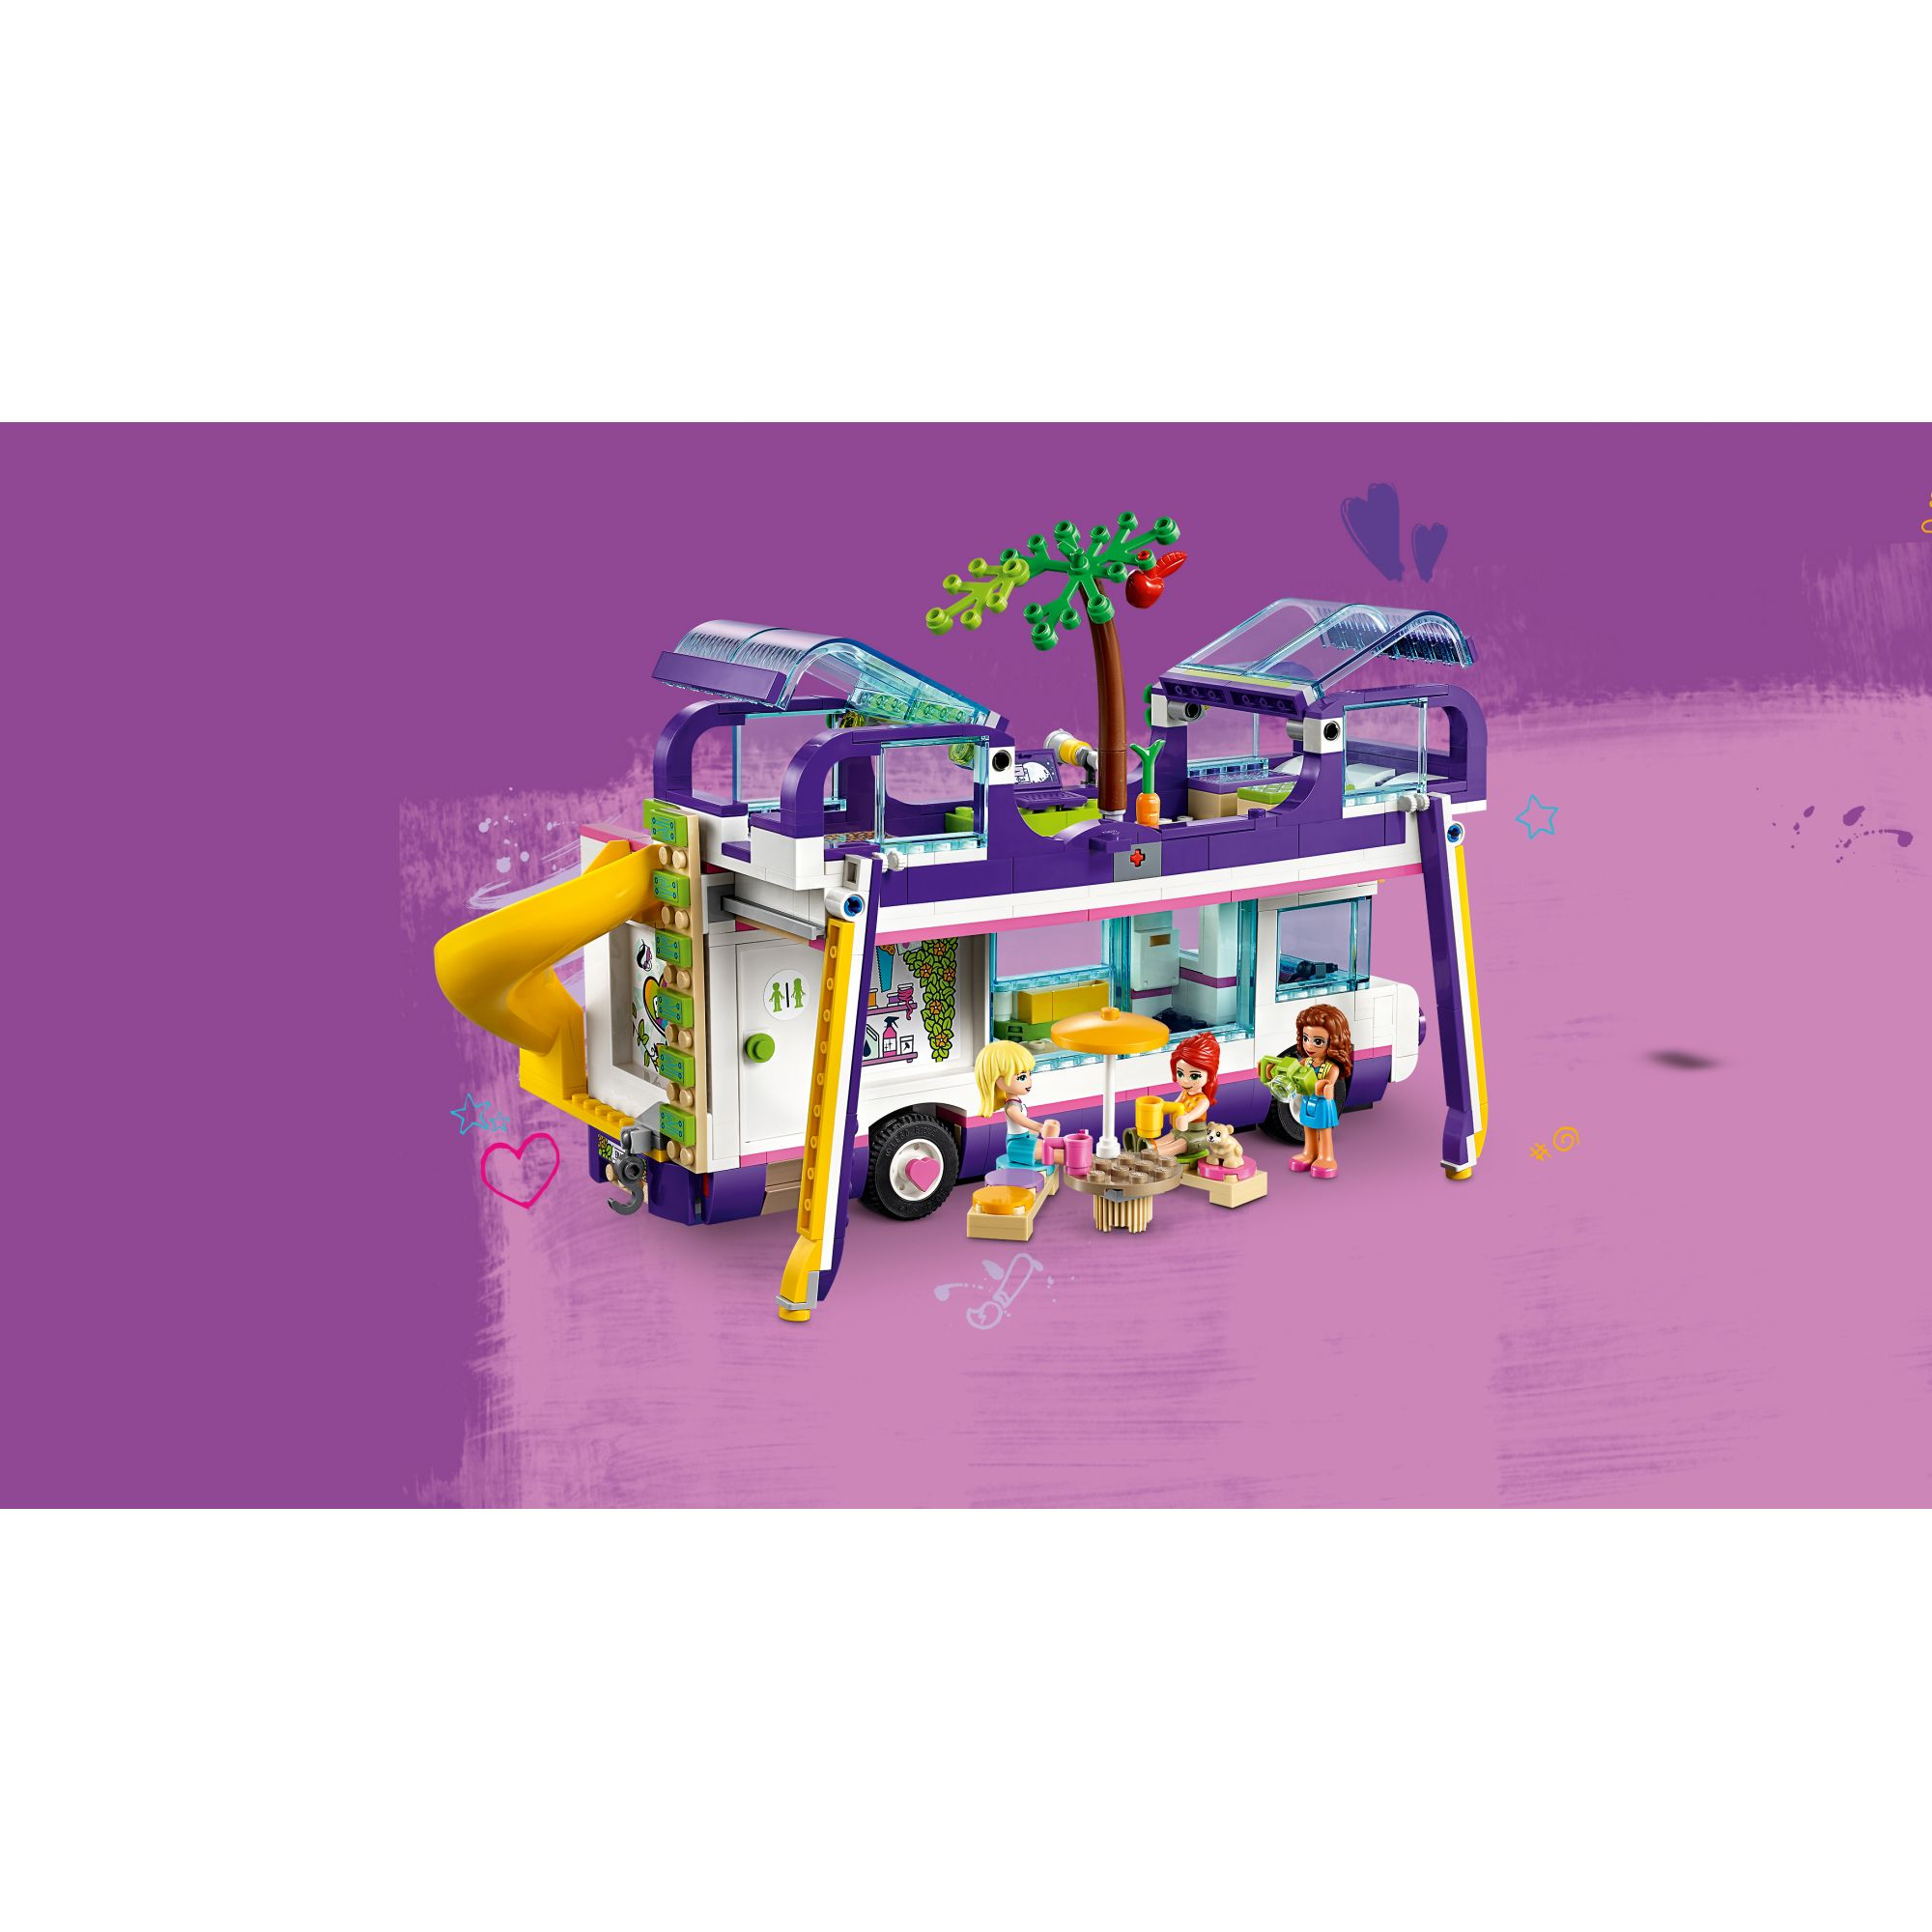 LEGO FRIENDS   LEGO Friends Il bus dell'amicizia - 41395